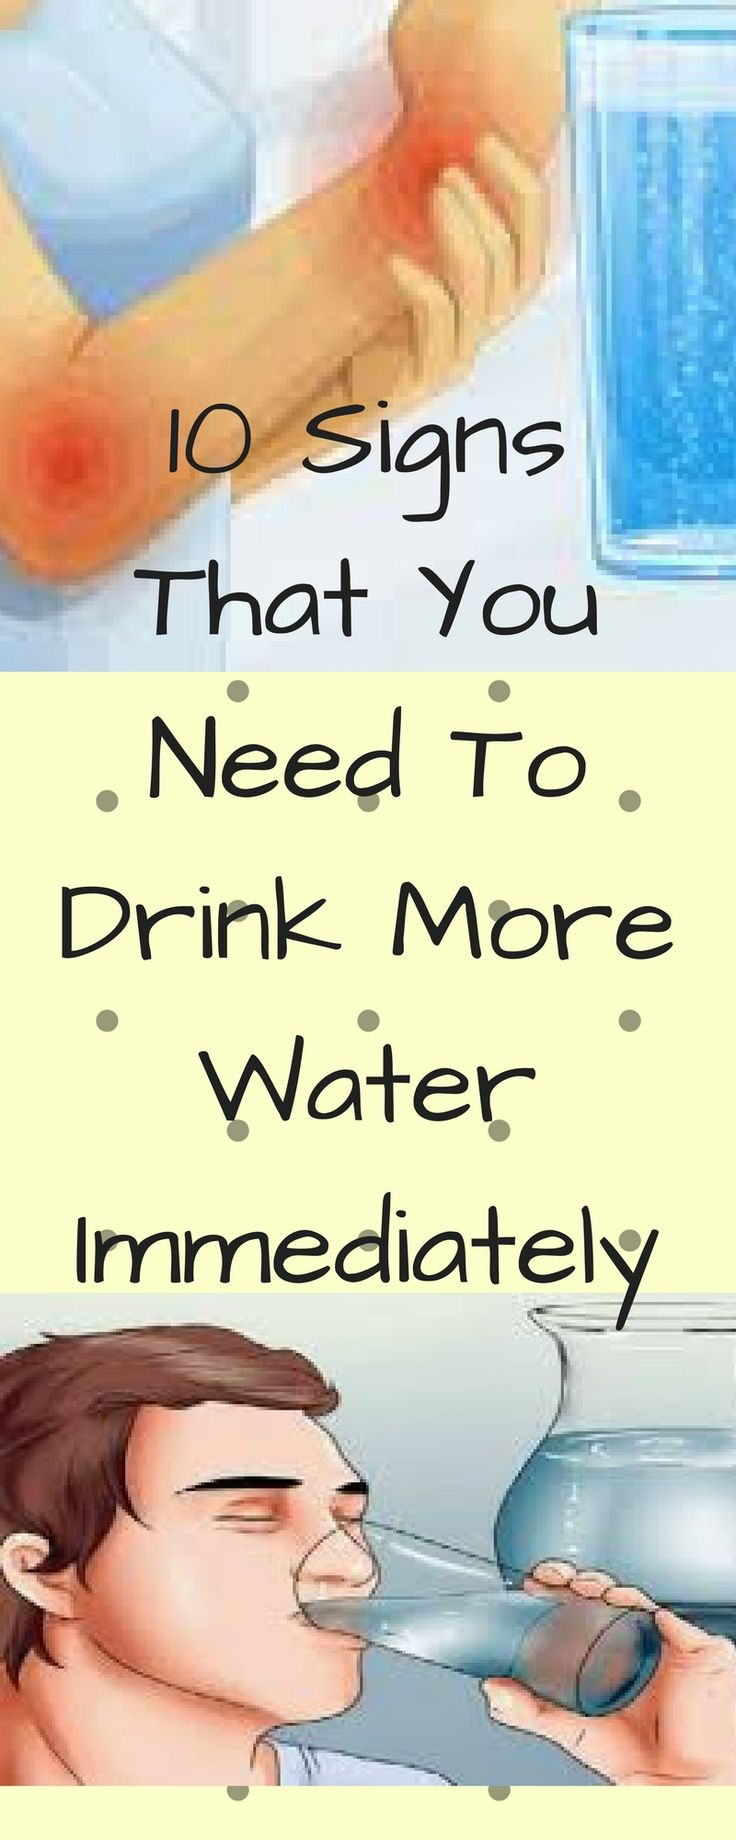 10-signs-need-drink-water-immediately/